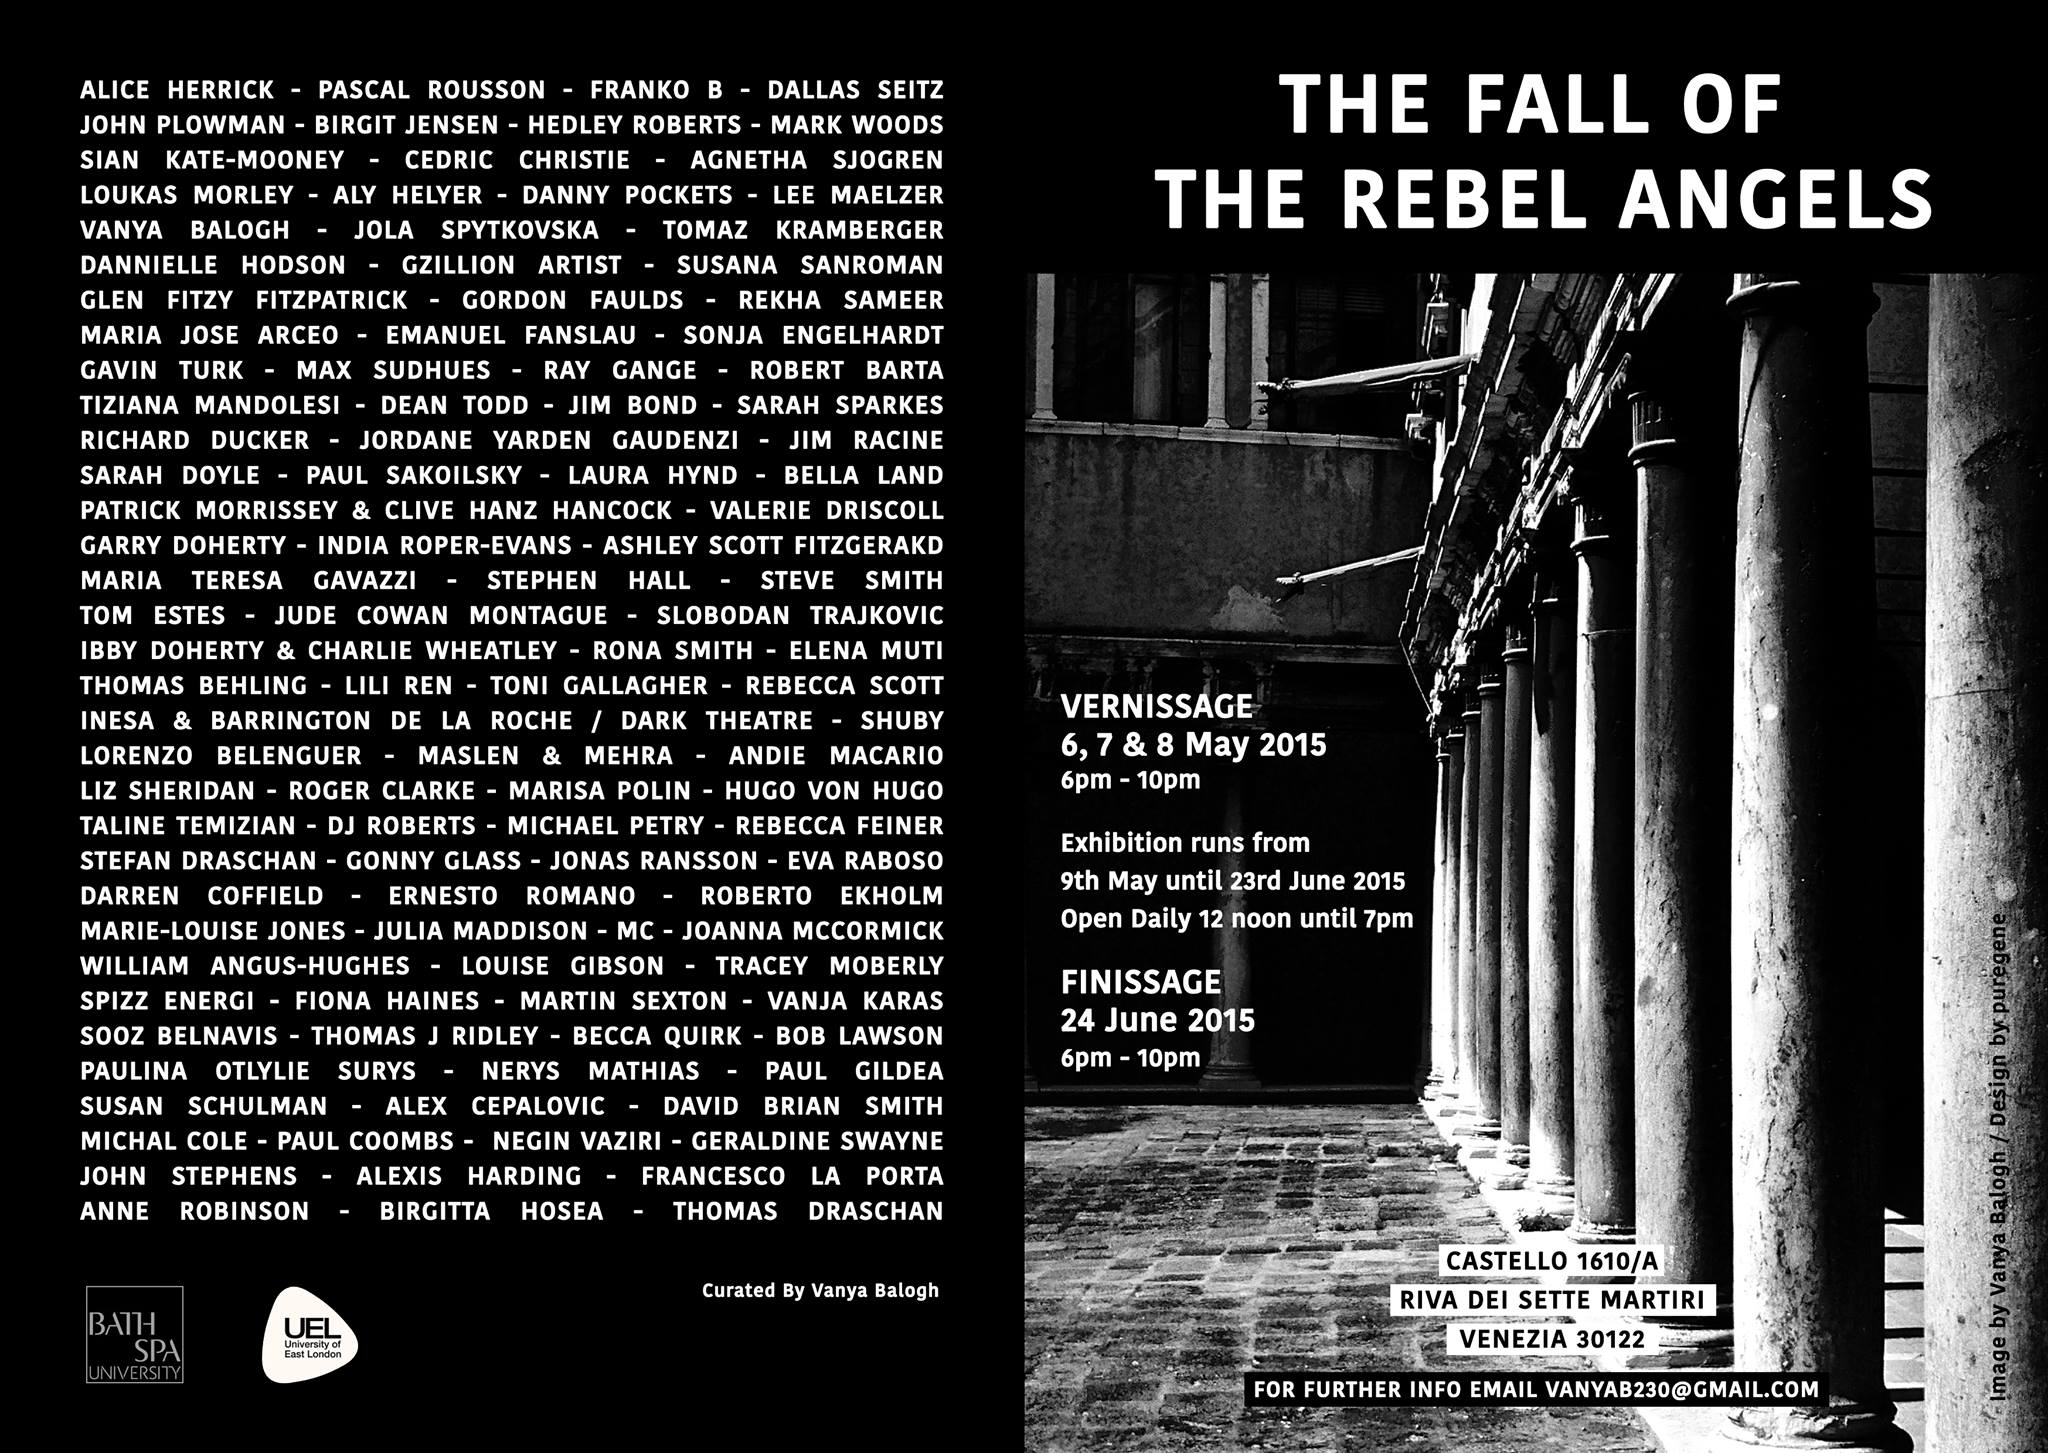 The Fall of the Rebel Angels Exhibition in Venice 2015